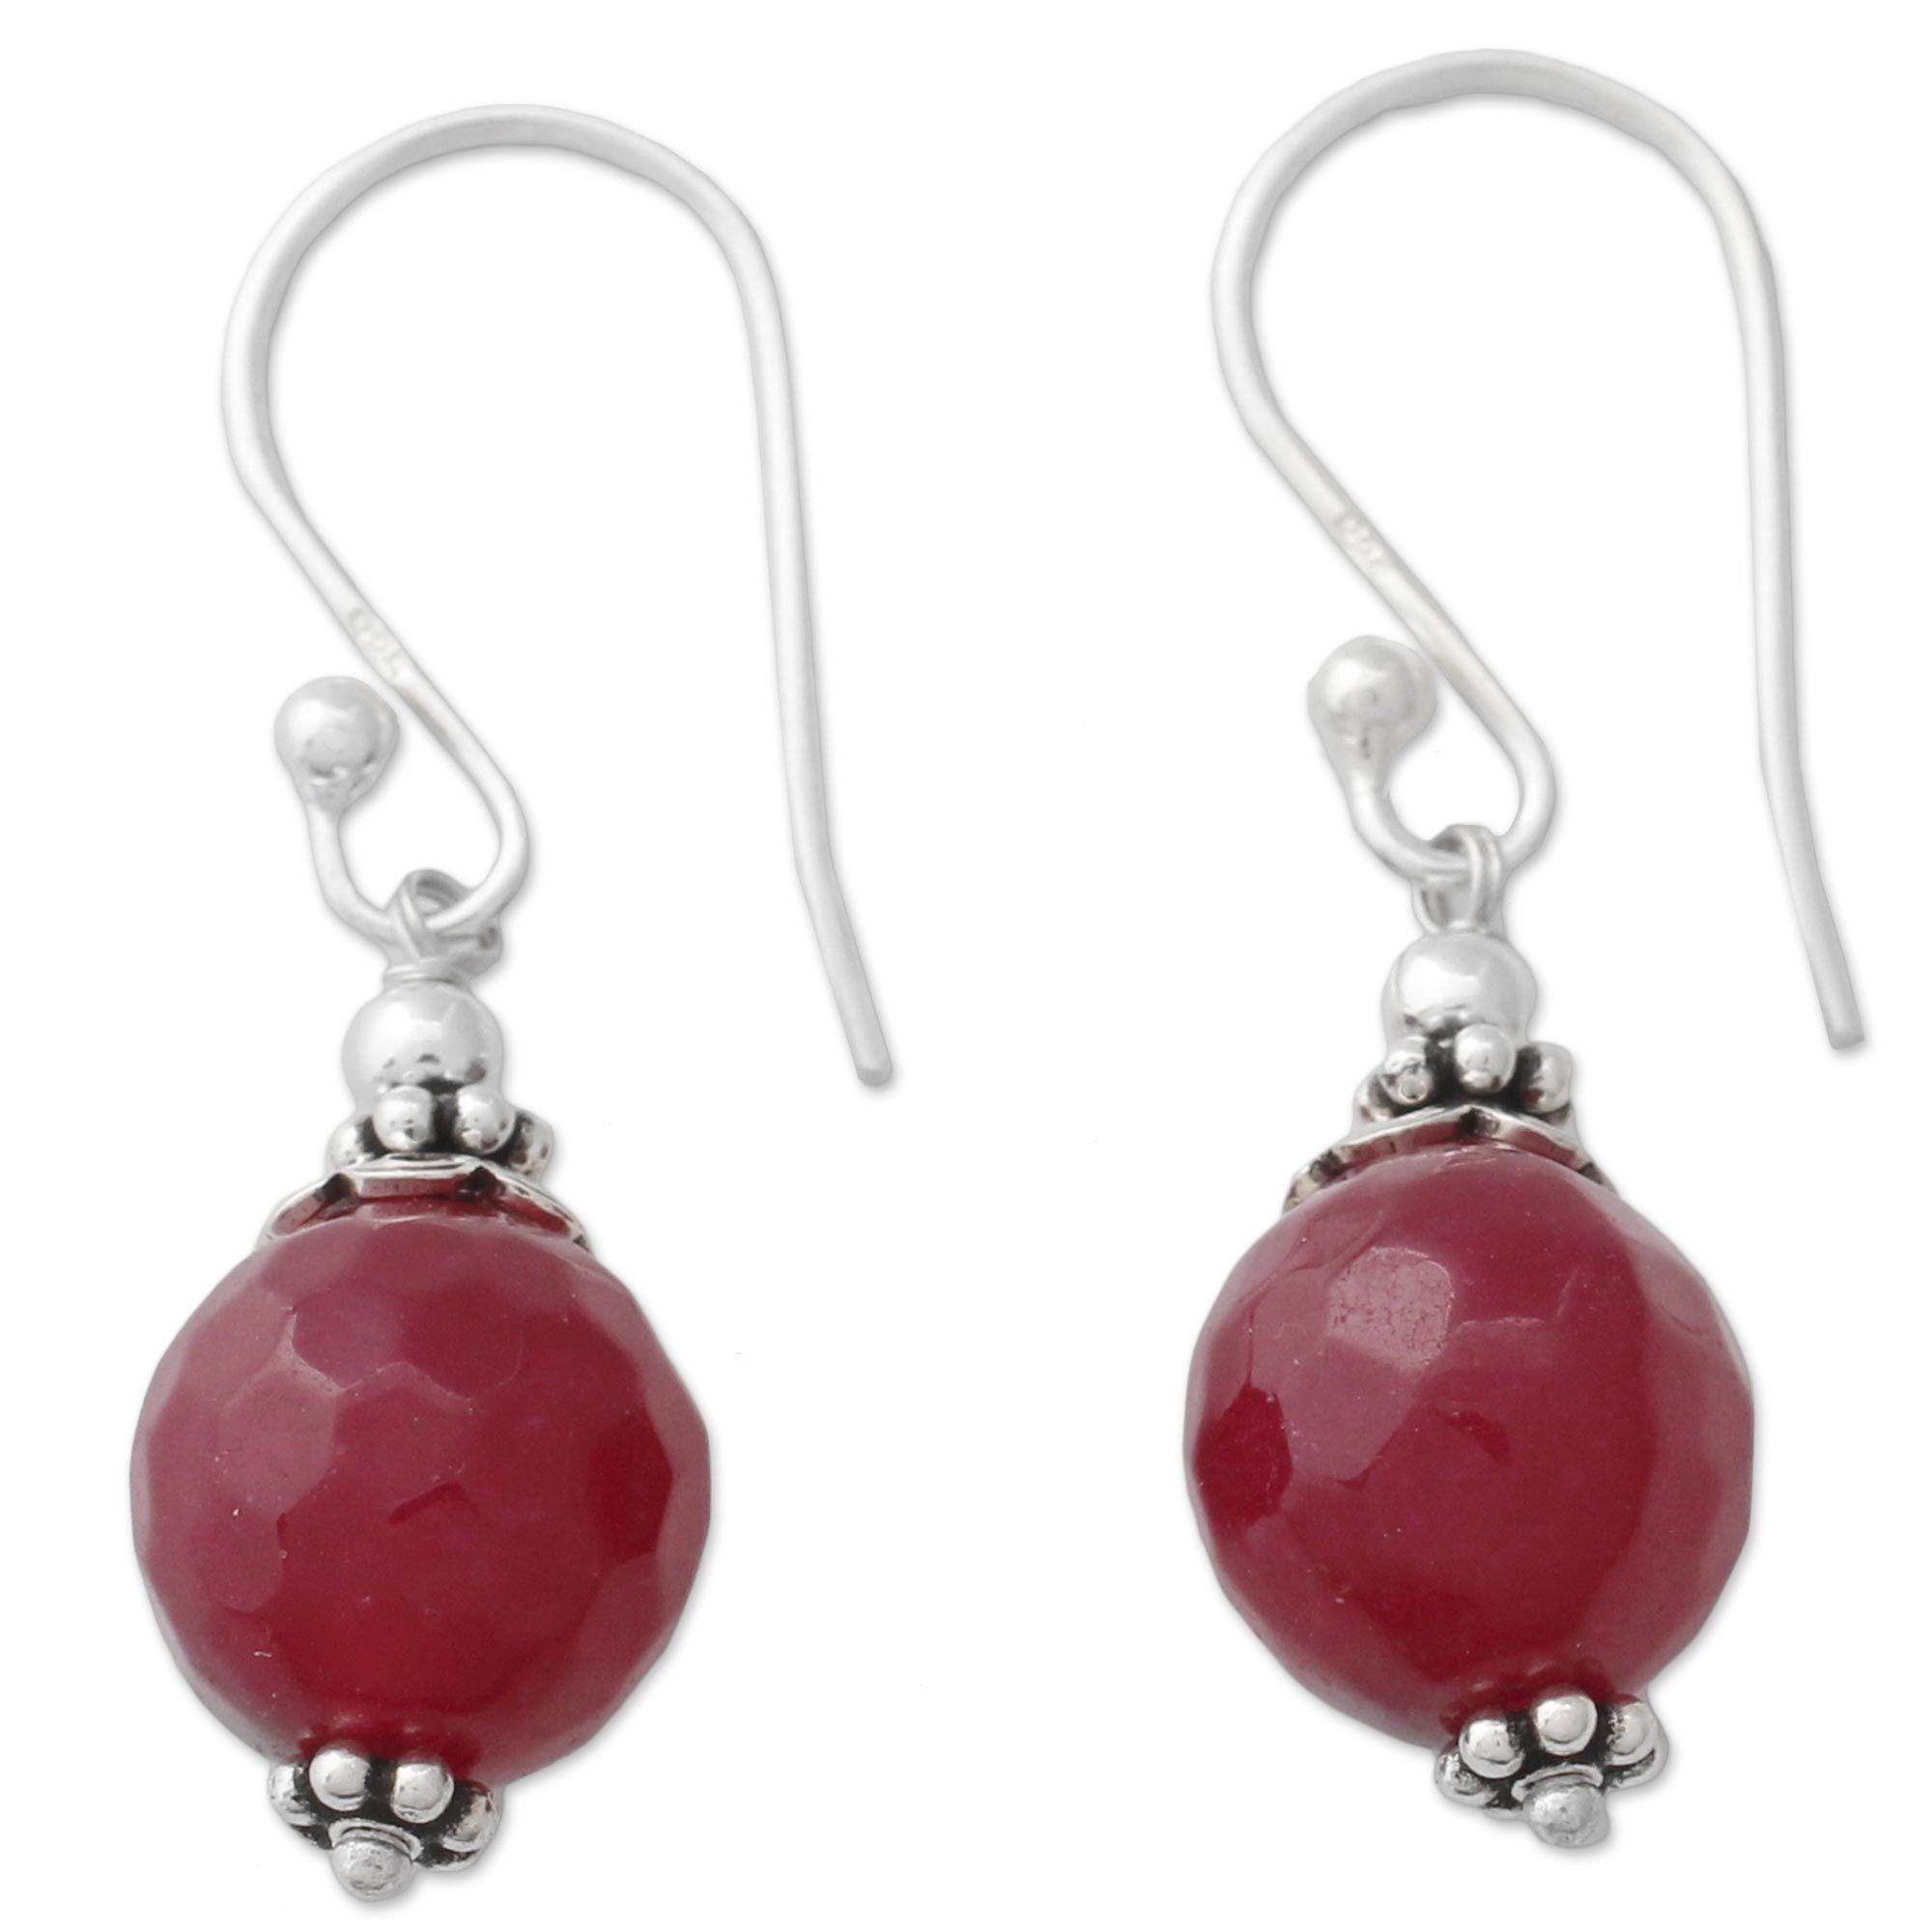 Handmade Sterling Silver Glorious Red Agate Earrings India On Free Shipping Orders Over 45 12002790